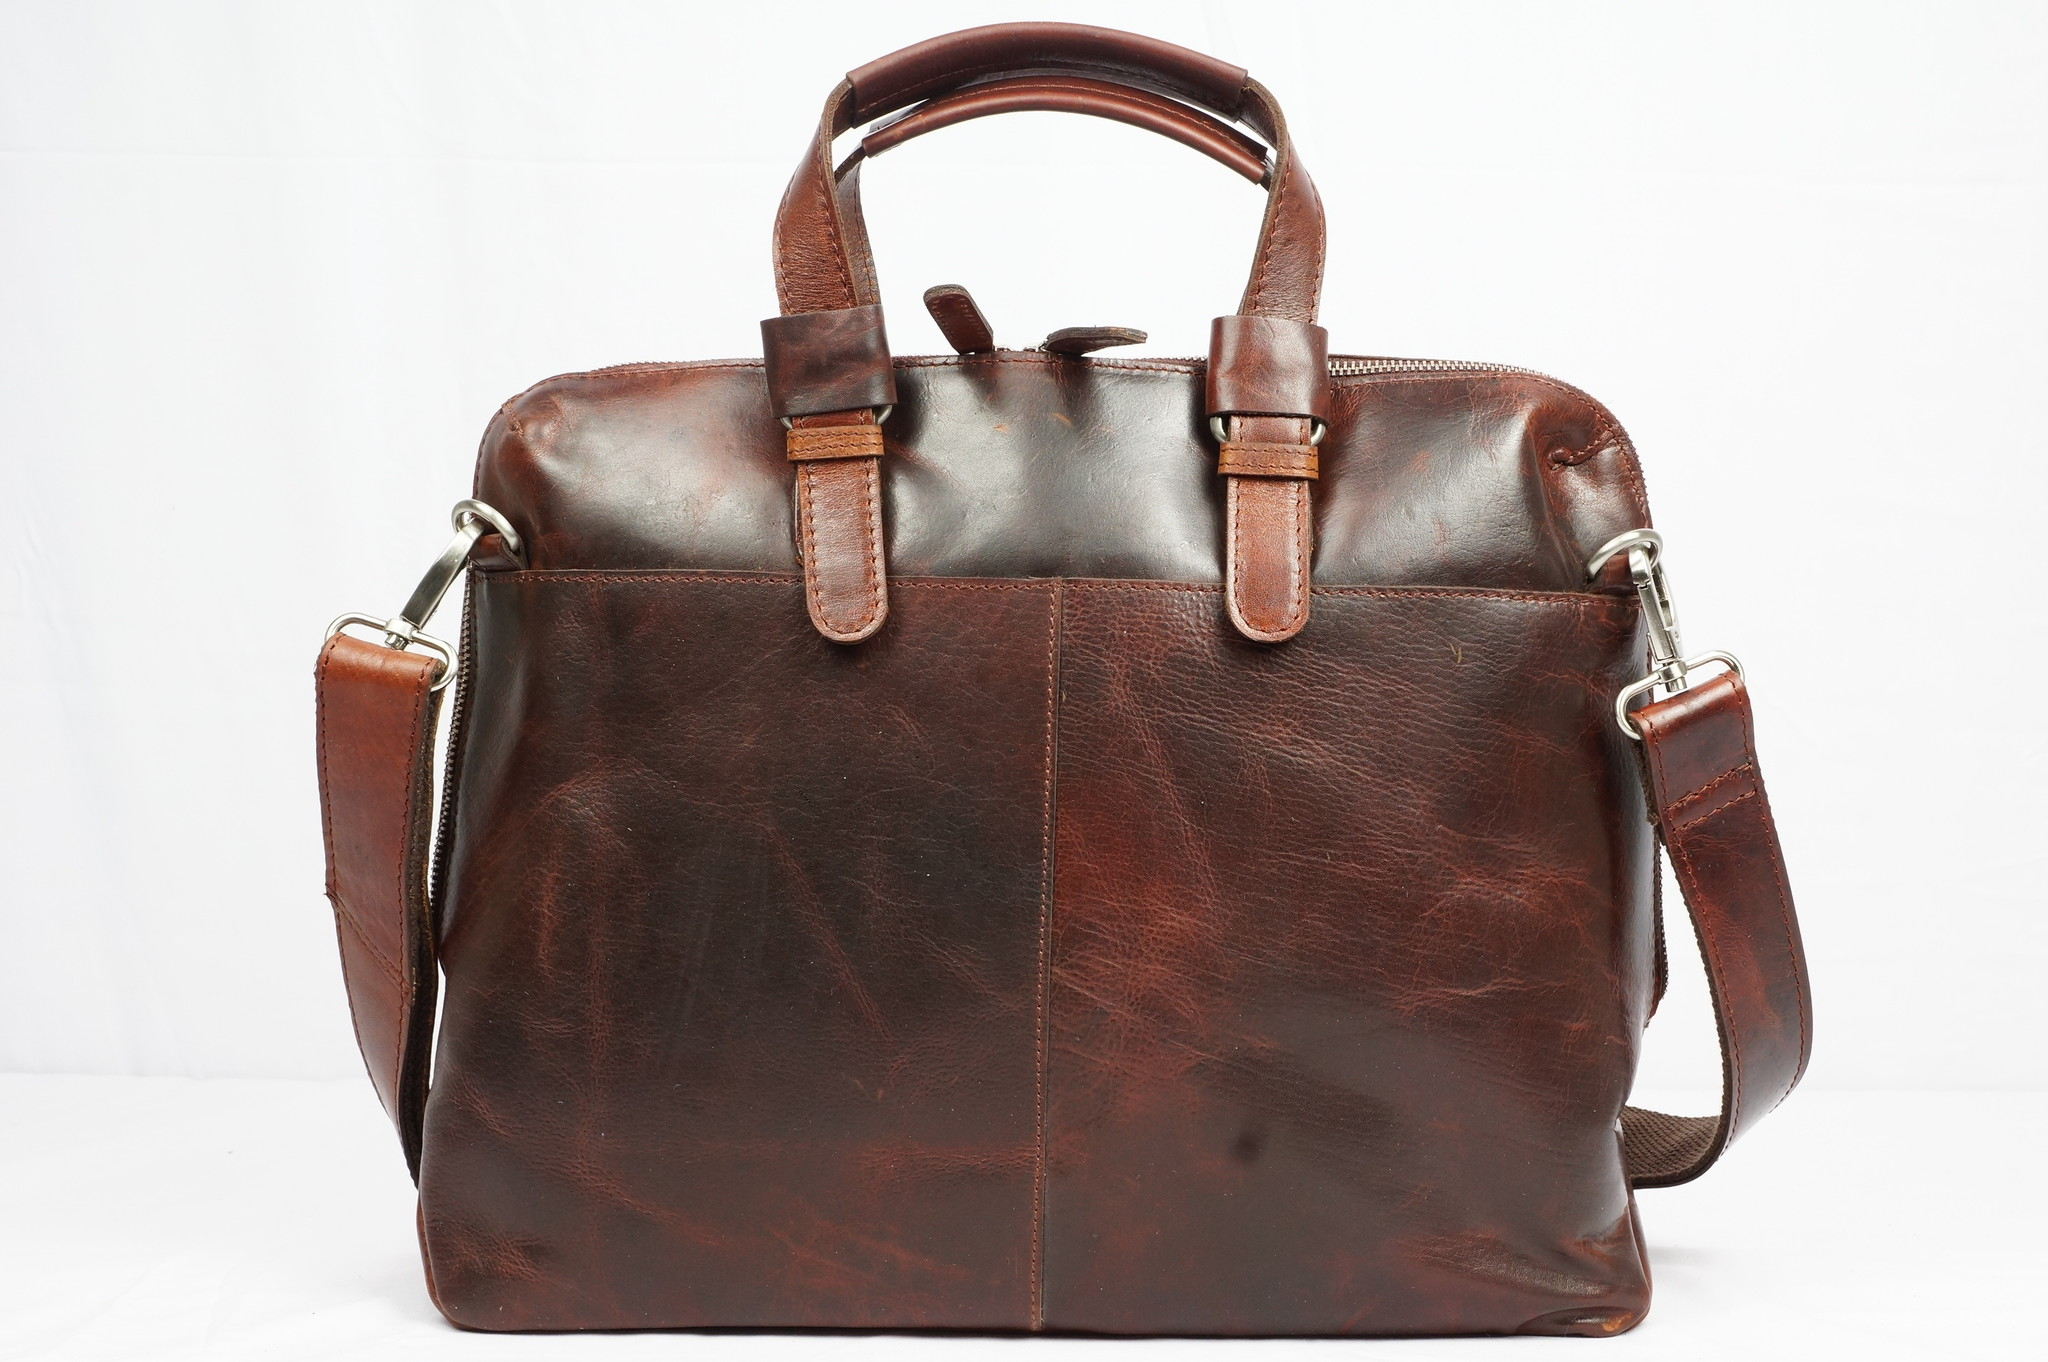 Arpello Old School brief case